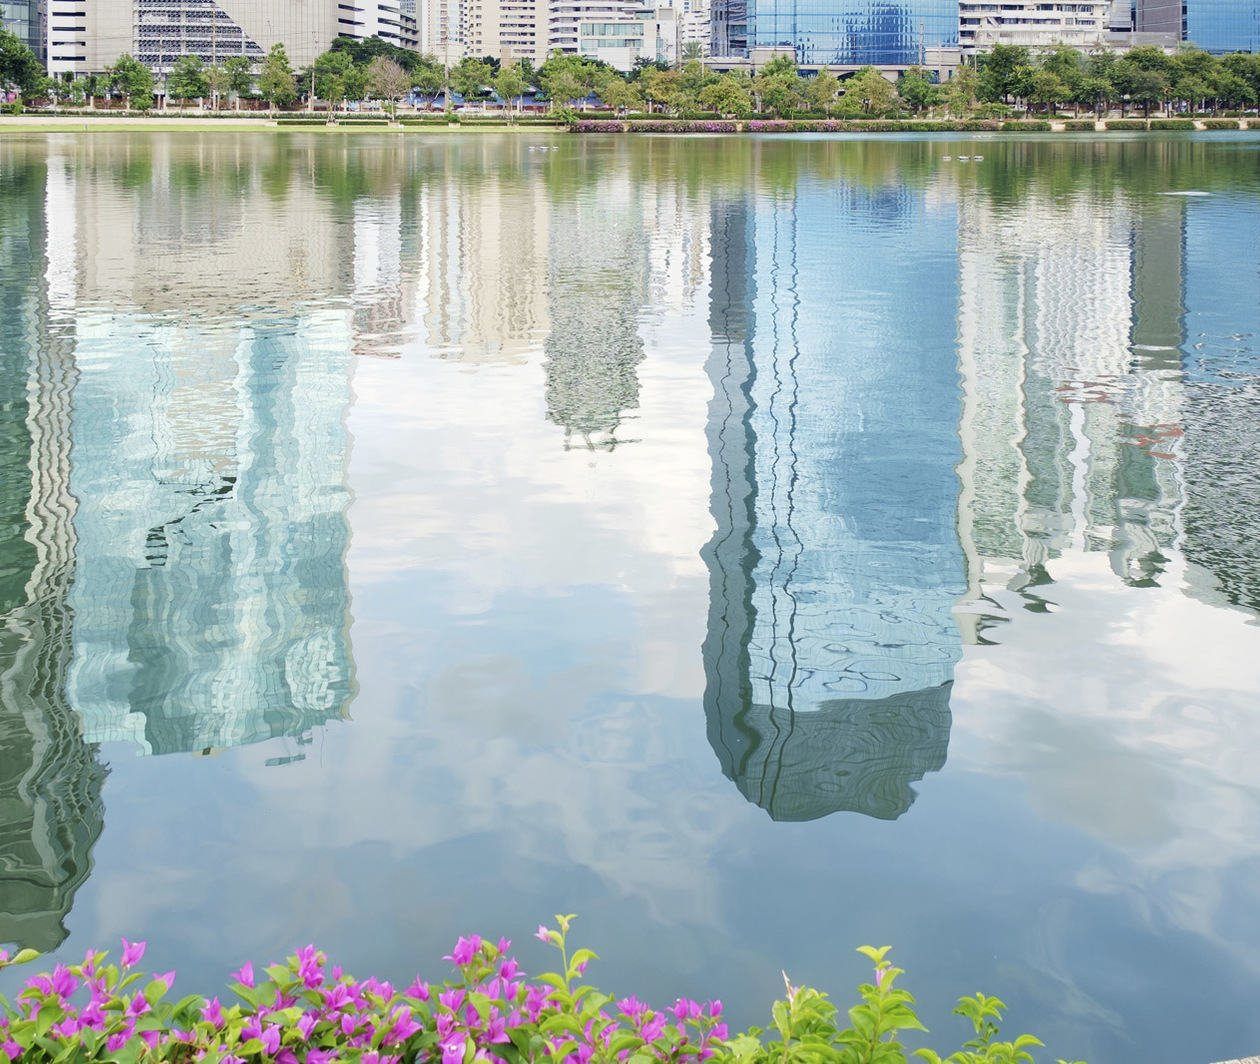 Water for Liveable and Resilient Cities